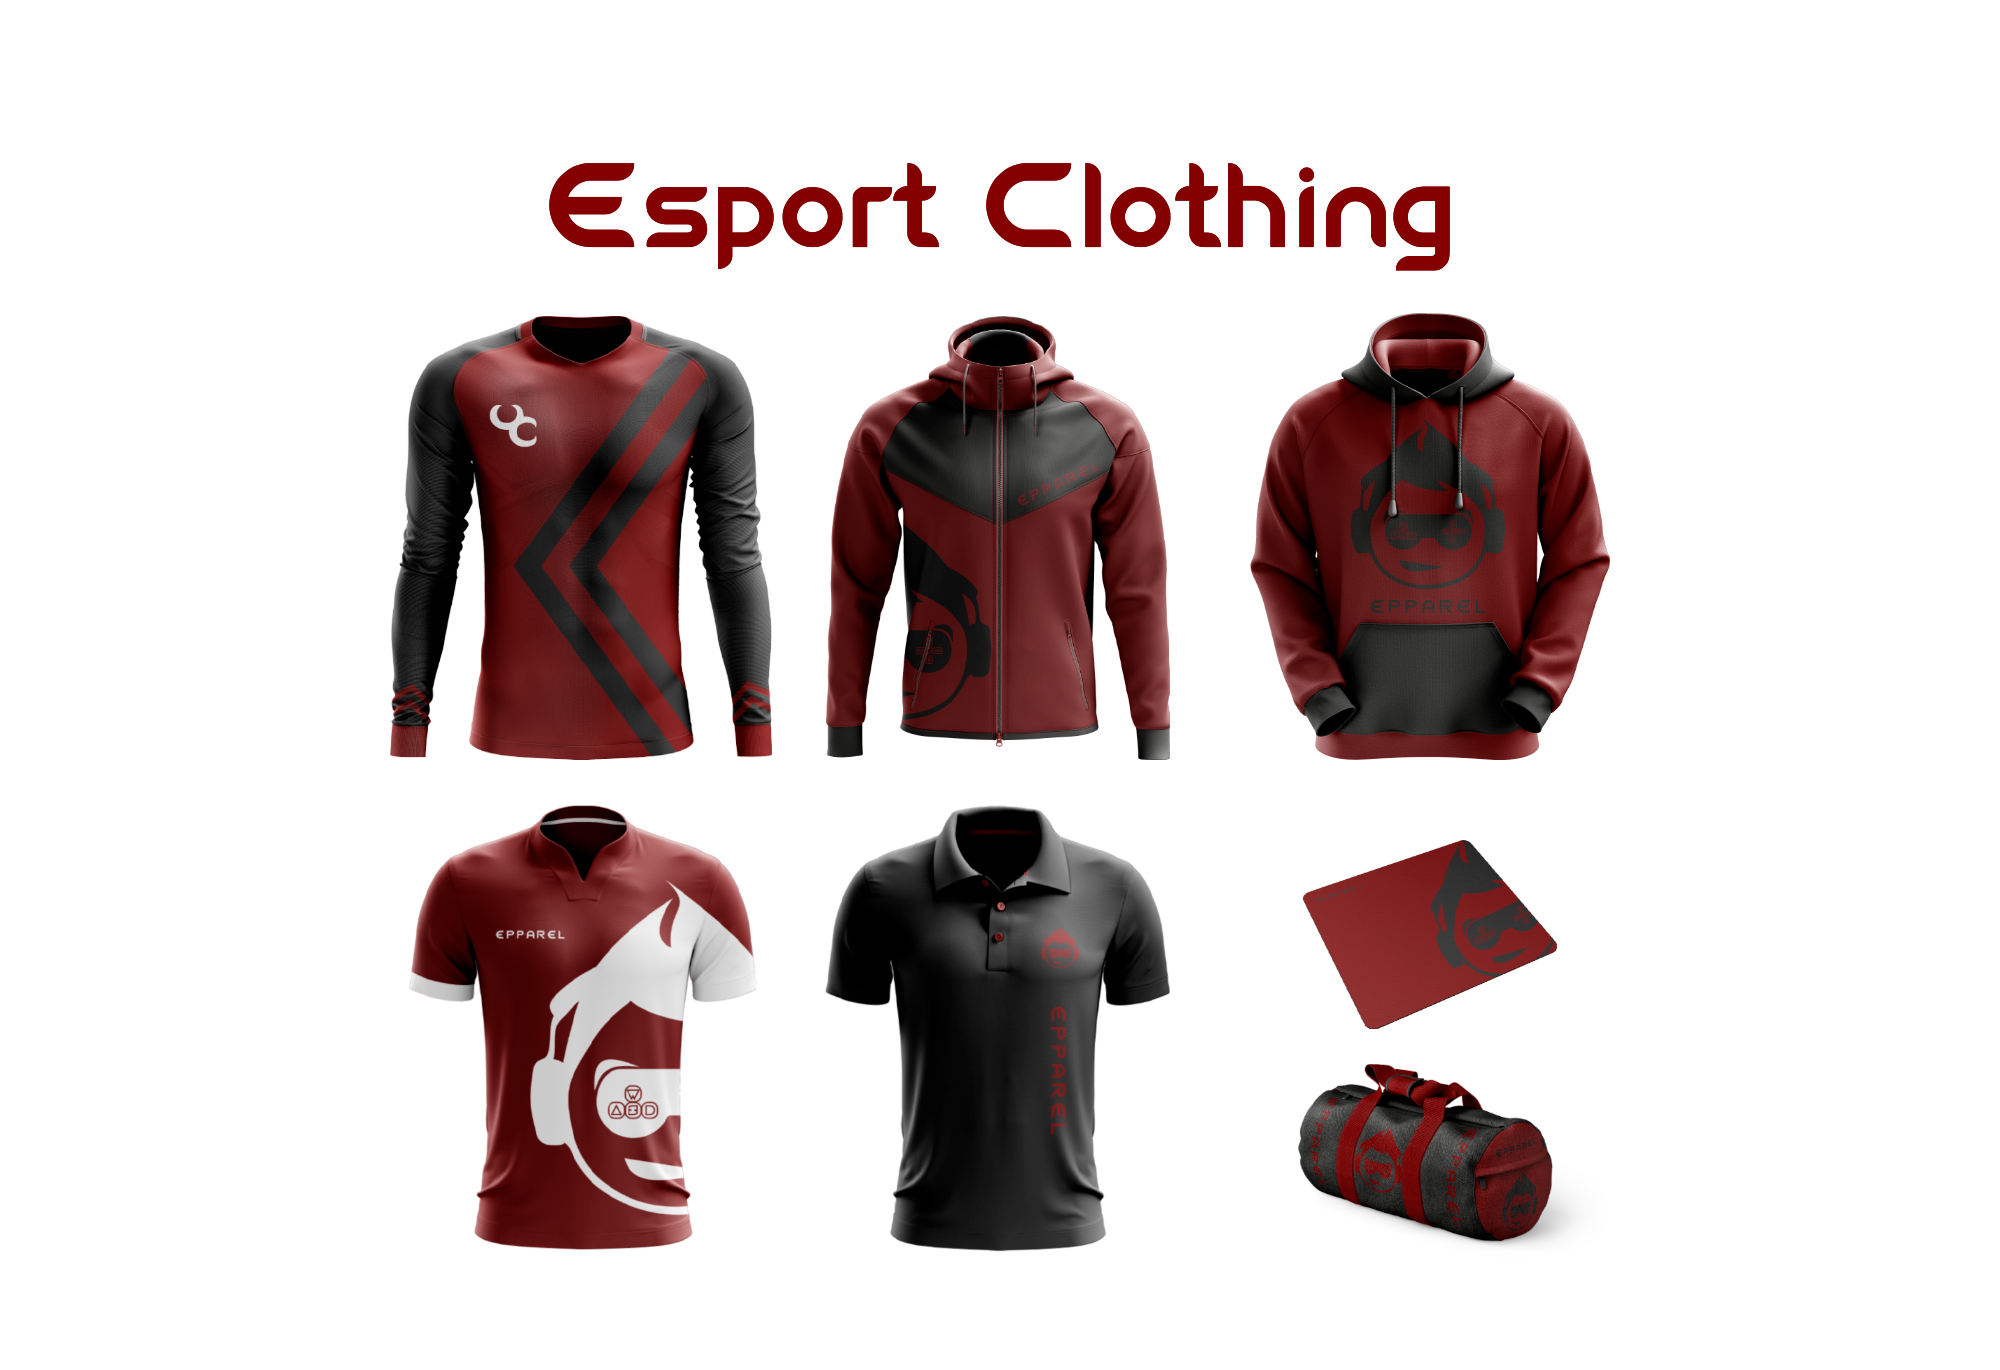 Esport clothing